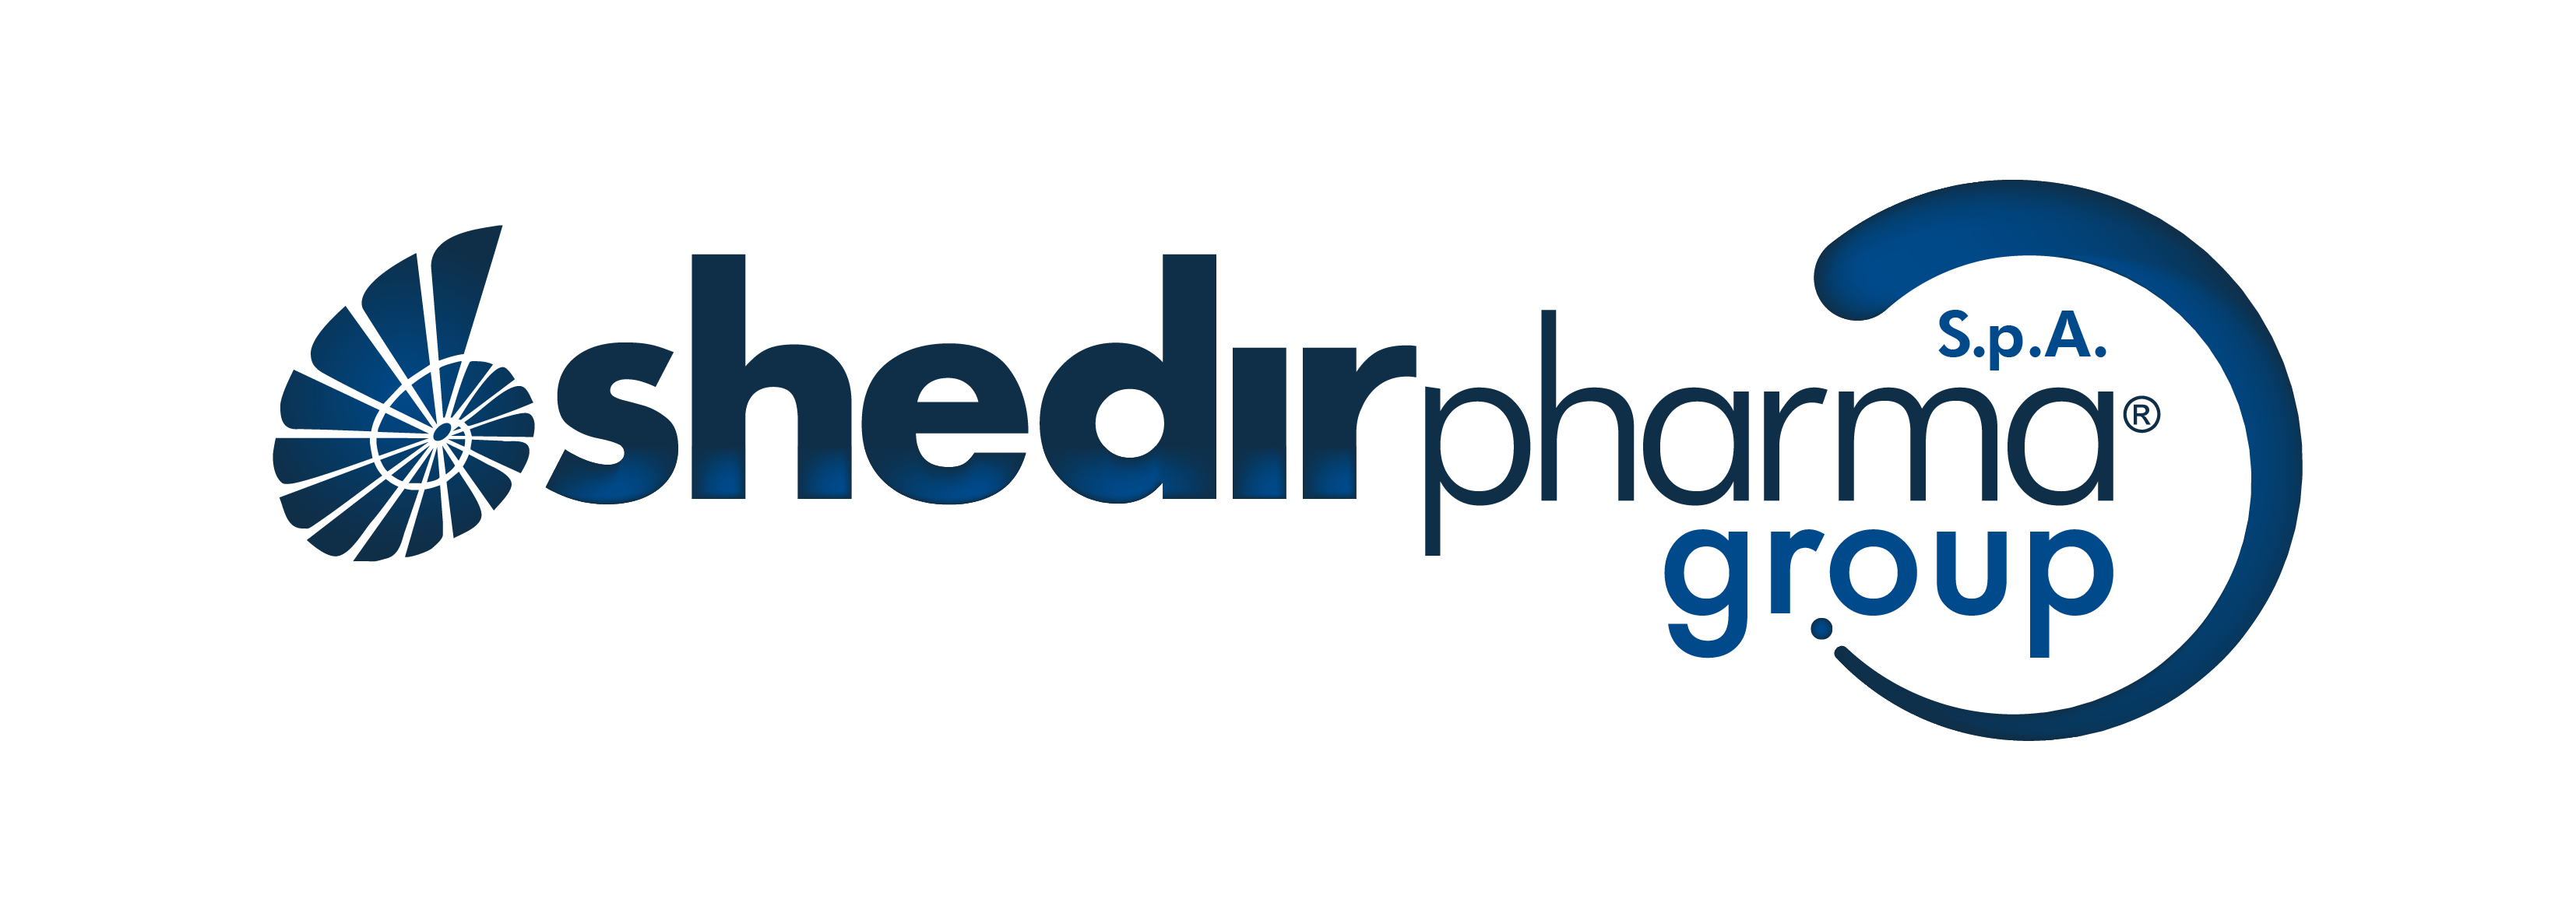 Shedirpharma Group